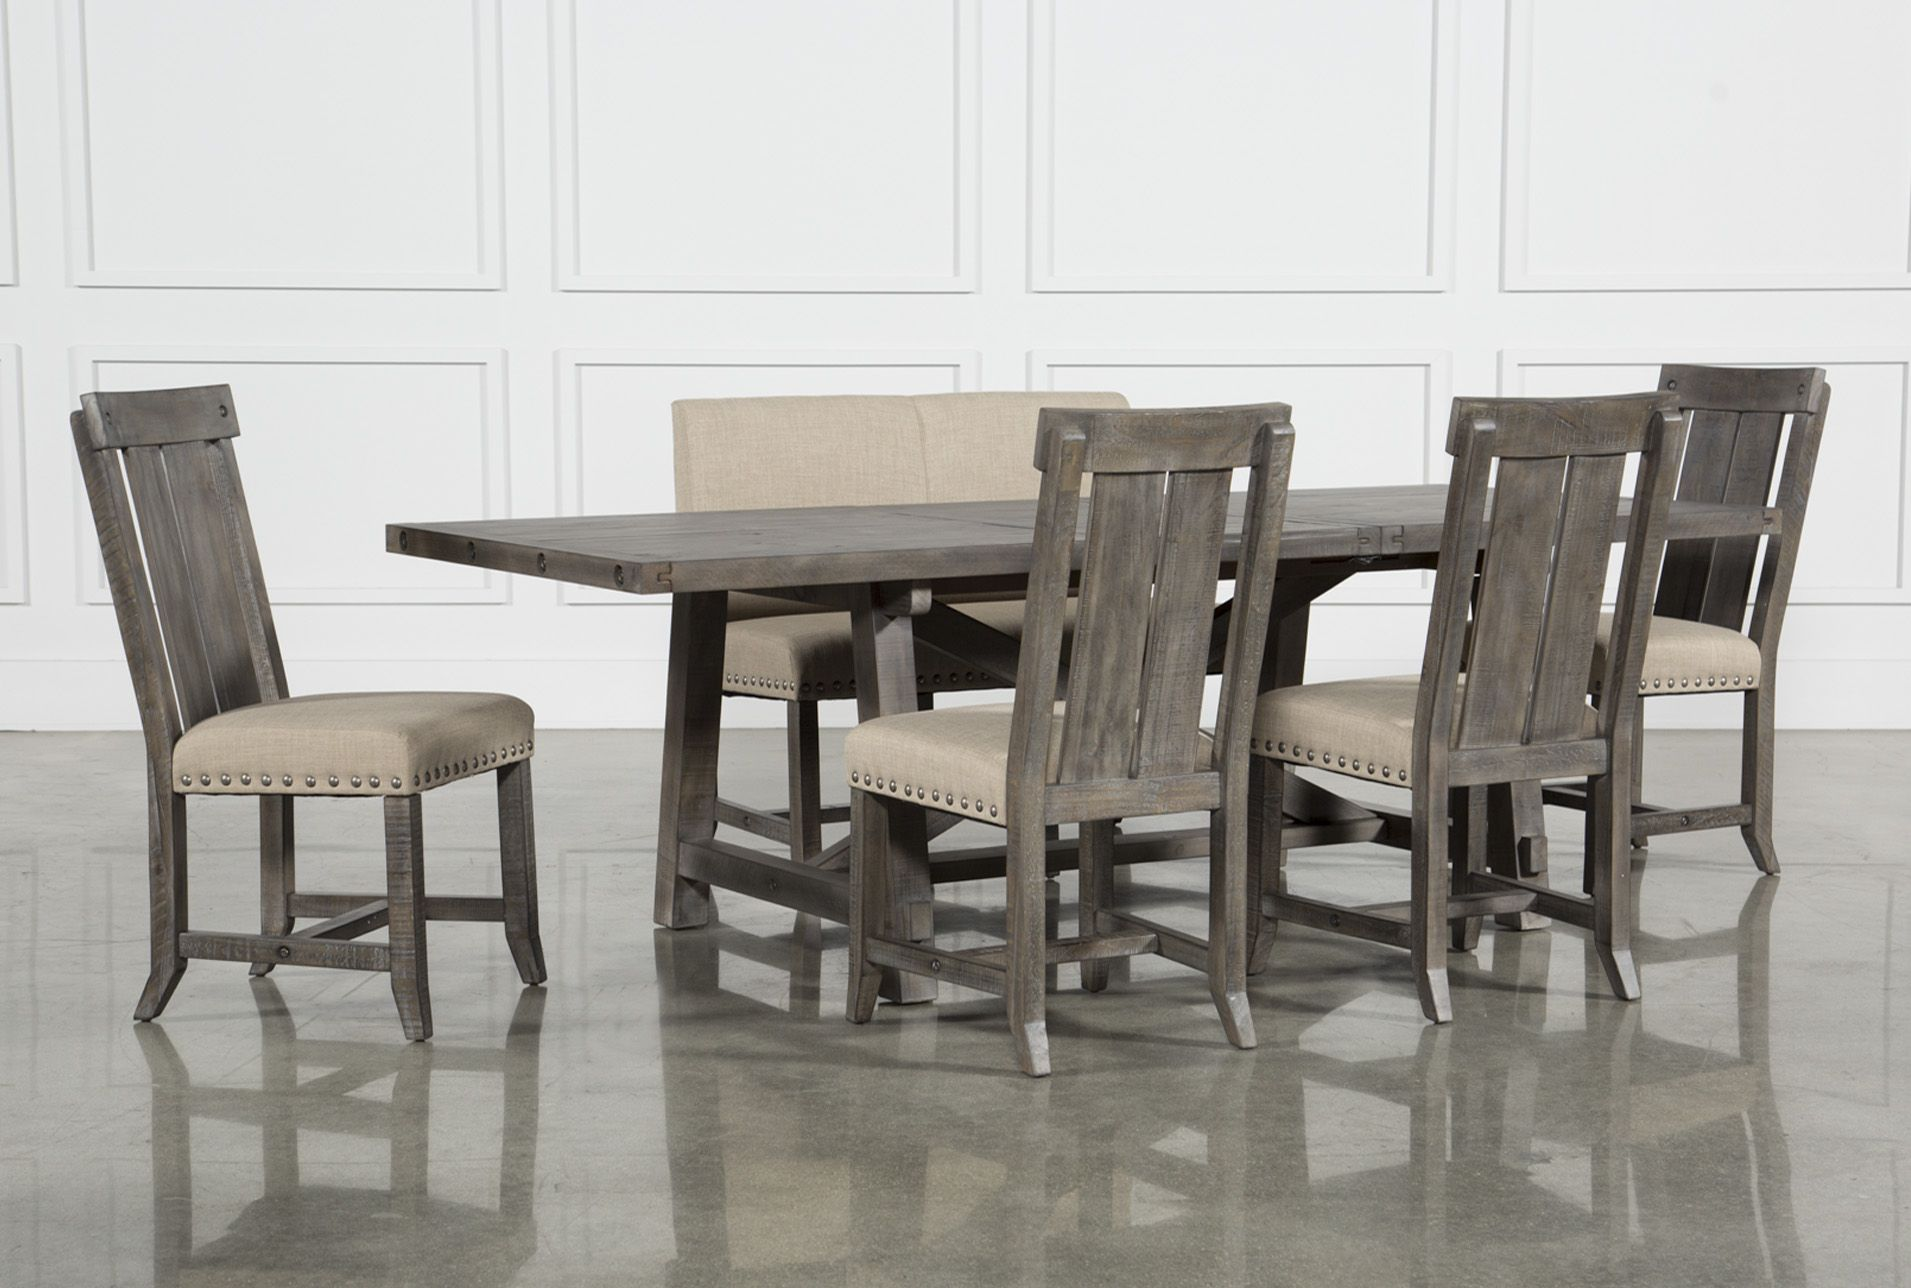 9396938f55 Jaxon Grey 6 Piece Rectangle Extension Dining Set W/Bench & Wood Chairs